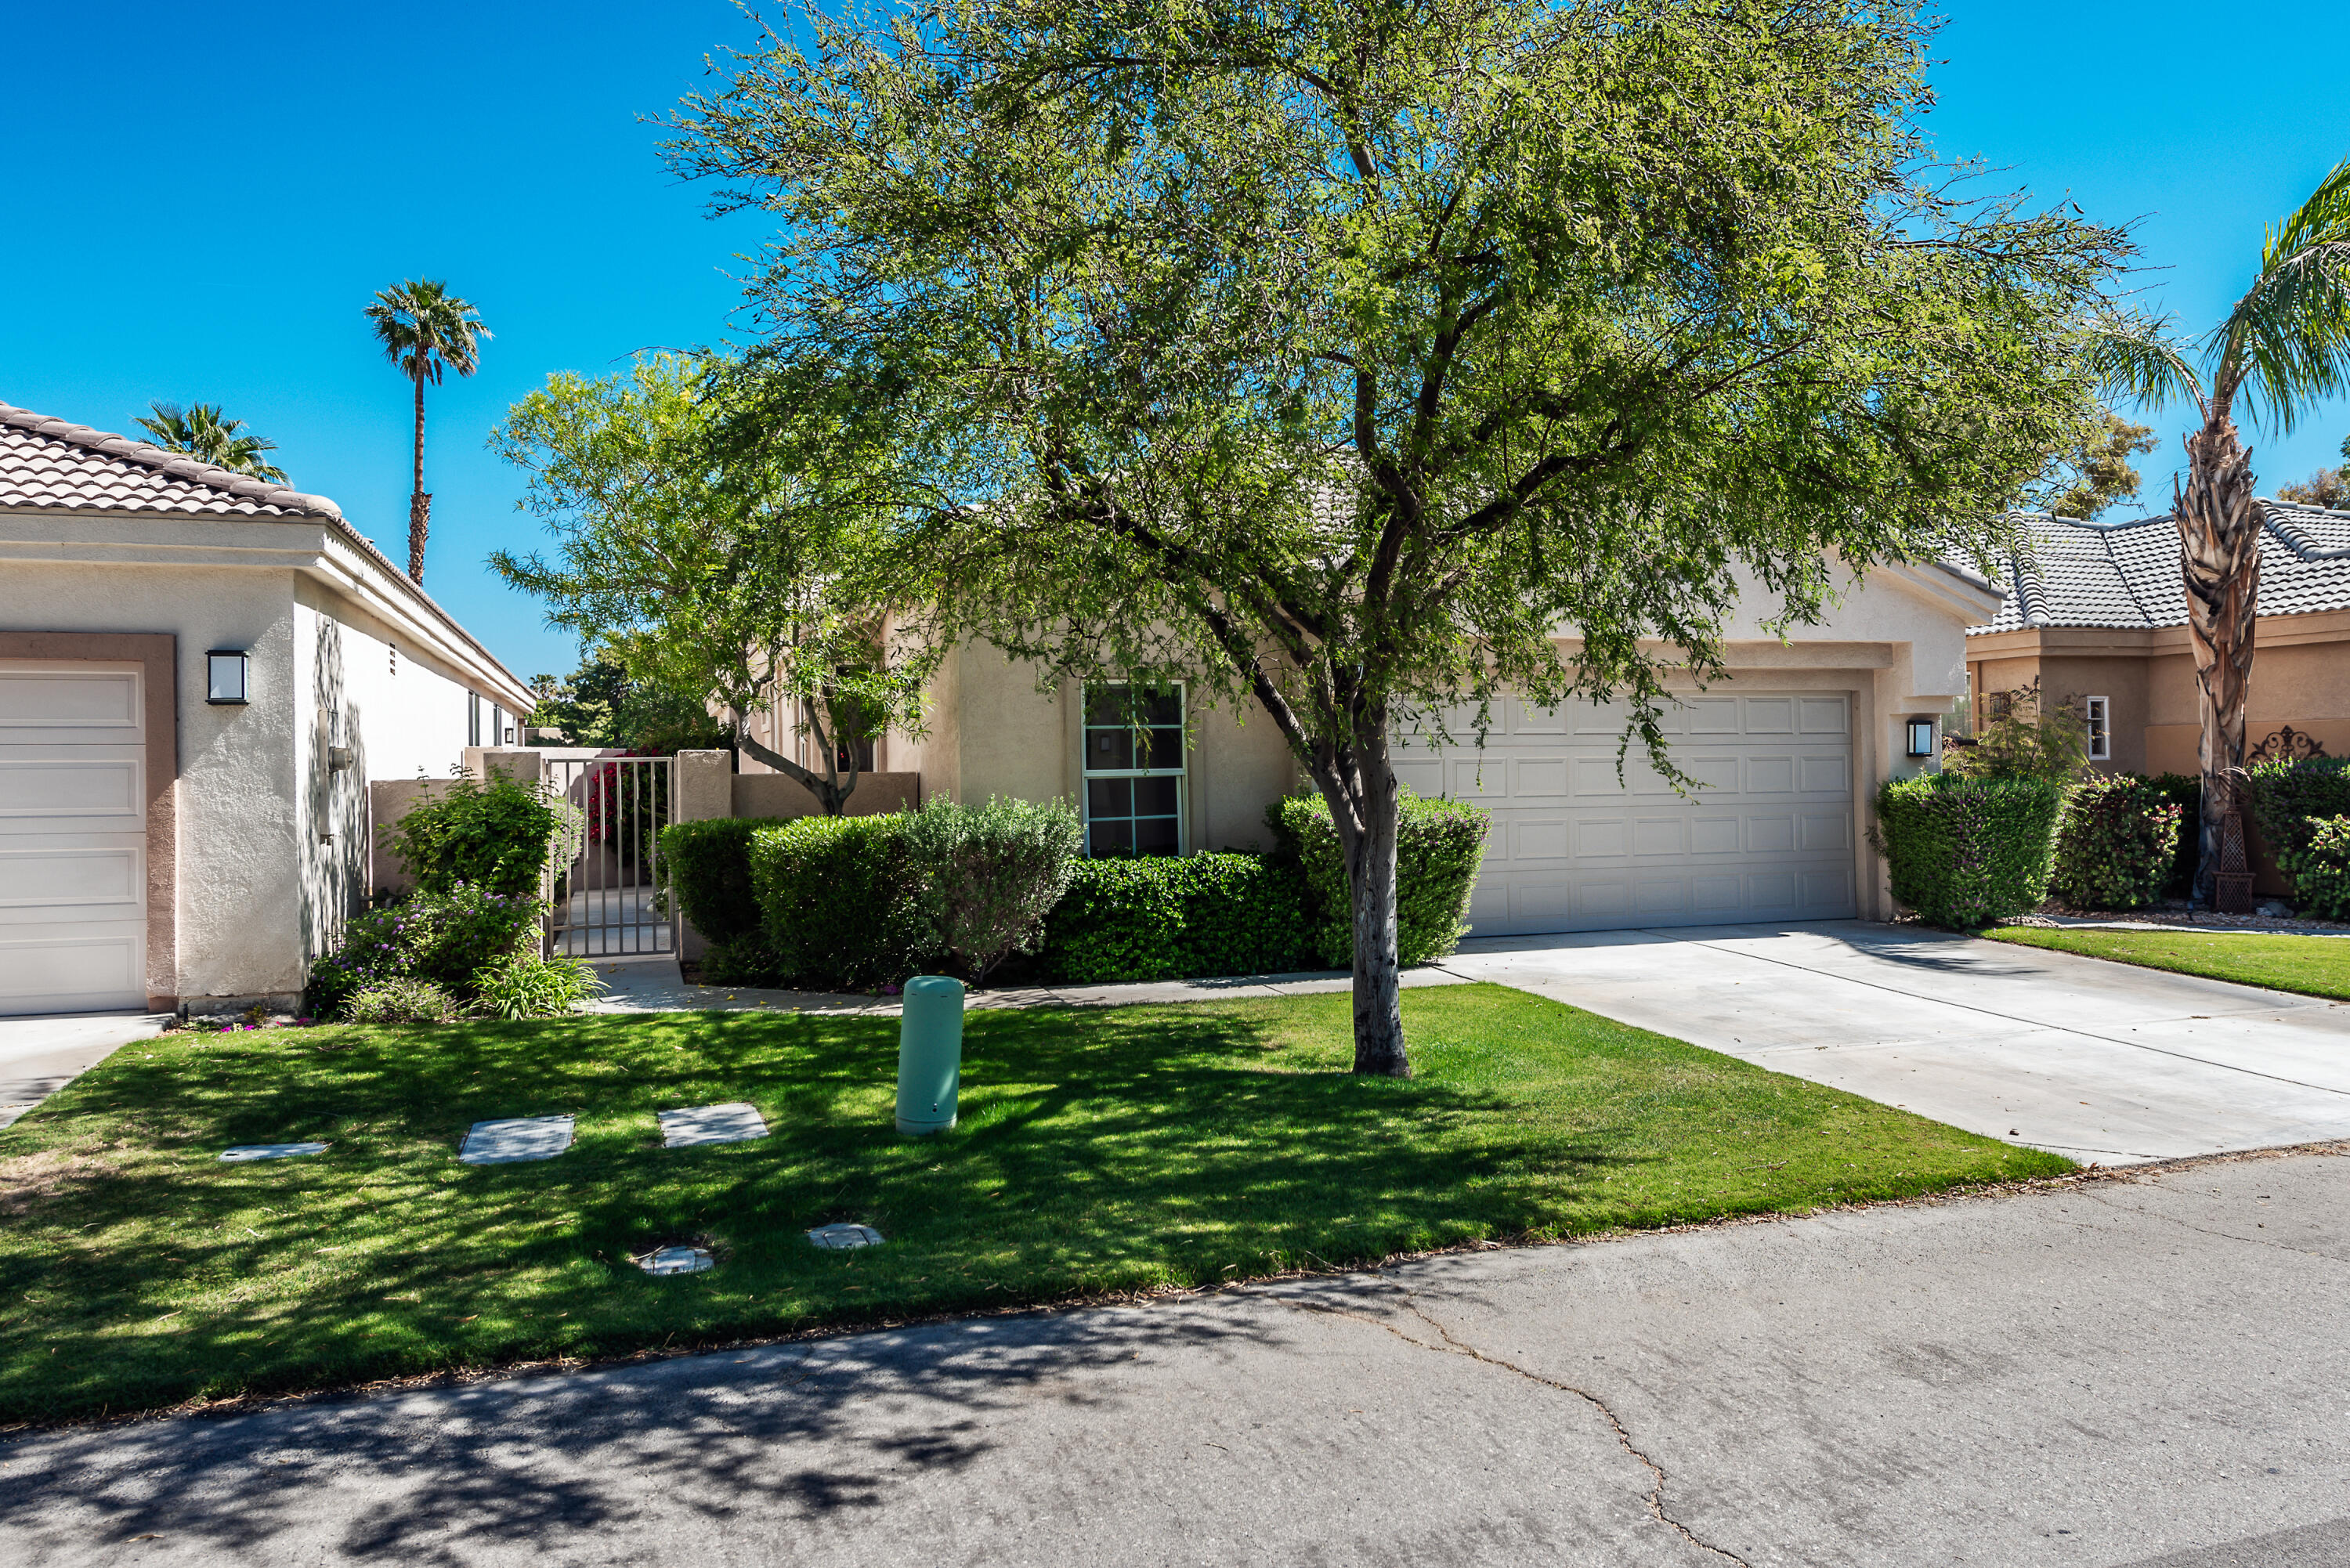 This lovely 2 bedroom 2 1/2 bath home offers very light and comfortable golf course living on a quiet, interior street in Desert Princess Palm Springs. The Living Room features Gas Fireplace and large, bright windows! The Kitchen boasts Granite Counters, a Breakfast Bar & a nice sized Walk-In Pantry!  This home also features two master suites with Private Baths & Closets with One of the master suites offering a large bonus room perfect for a workspace or additional space for guests or storage Separate Laundry. The Large Two Car attached Garage offers plenty of room and some additional storage. The Covered Back Patio provides beautiful views of the luxurious Desert Princess golf course! The home has been well maintained and many upgrades have been completed since the current owners moved in.  Desert Princess offers a 27 hole golf course, clubhouse and pro shop, 35 pools & spas, tennis, pickleball, bocce ball, full exercise facility, racquetball, relaxing spa and miles of roads to walk all in a private, gated community.  Minutes to Palm Springs & all the valley has to offer. Many more details are available upon request.